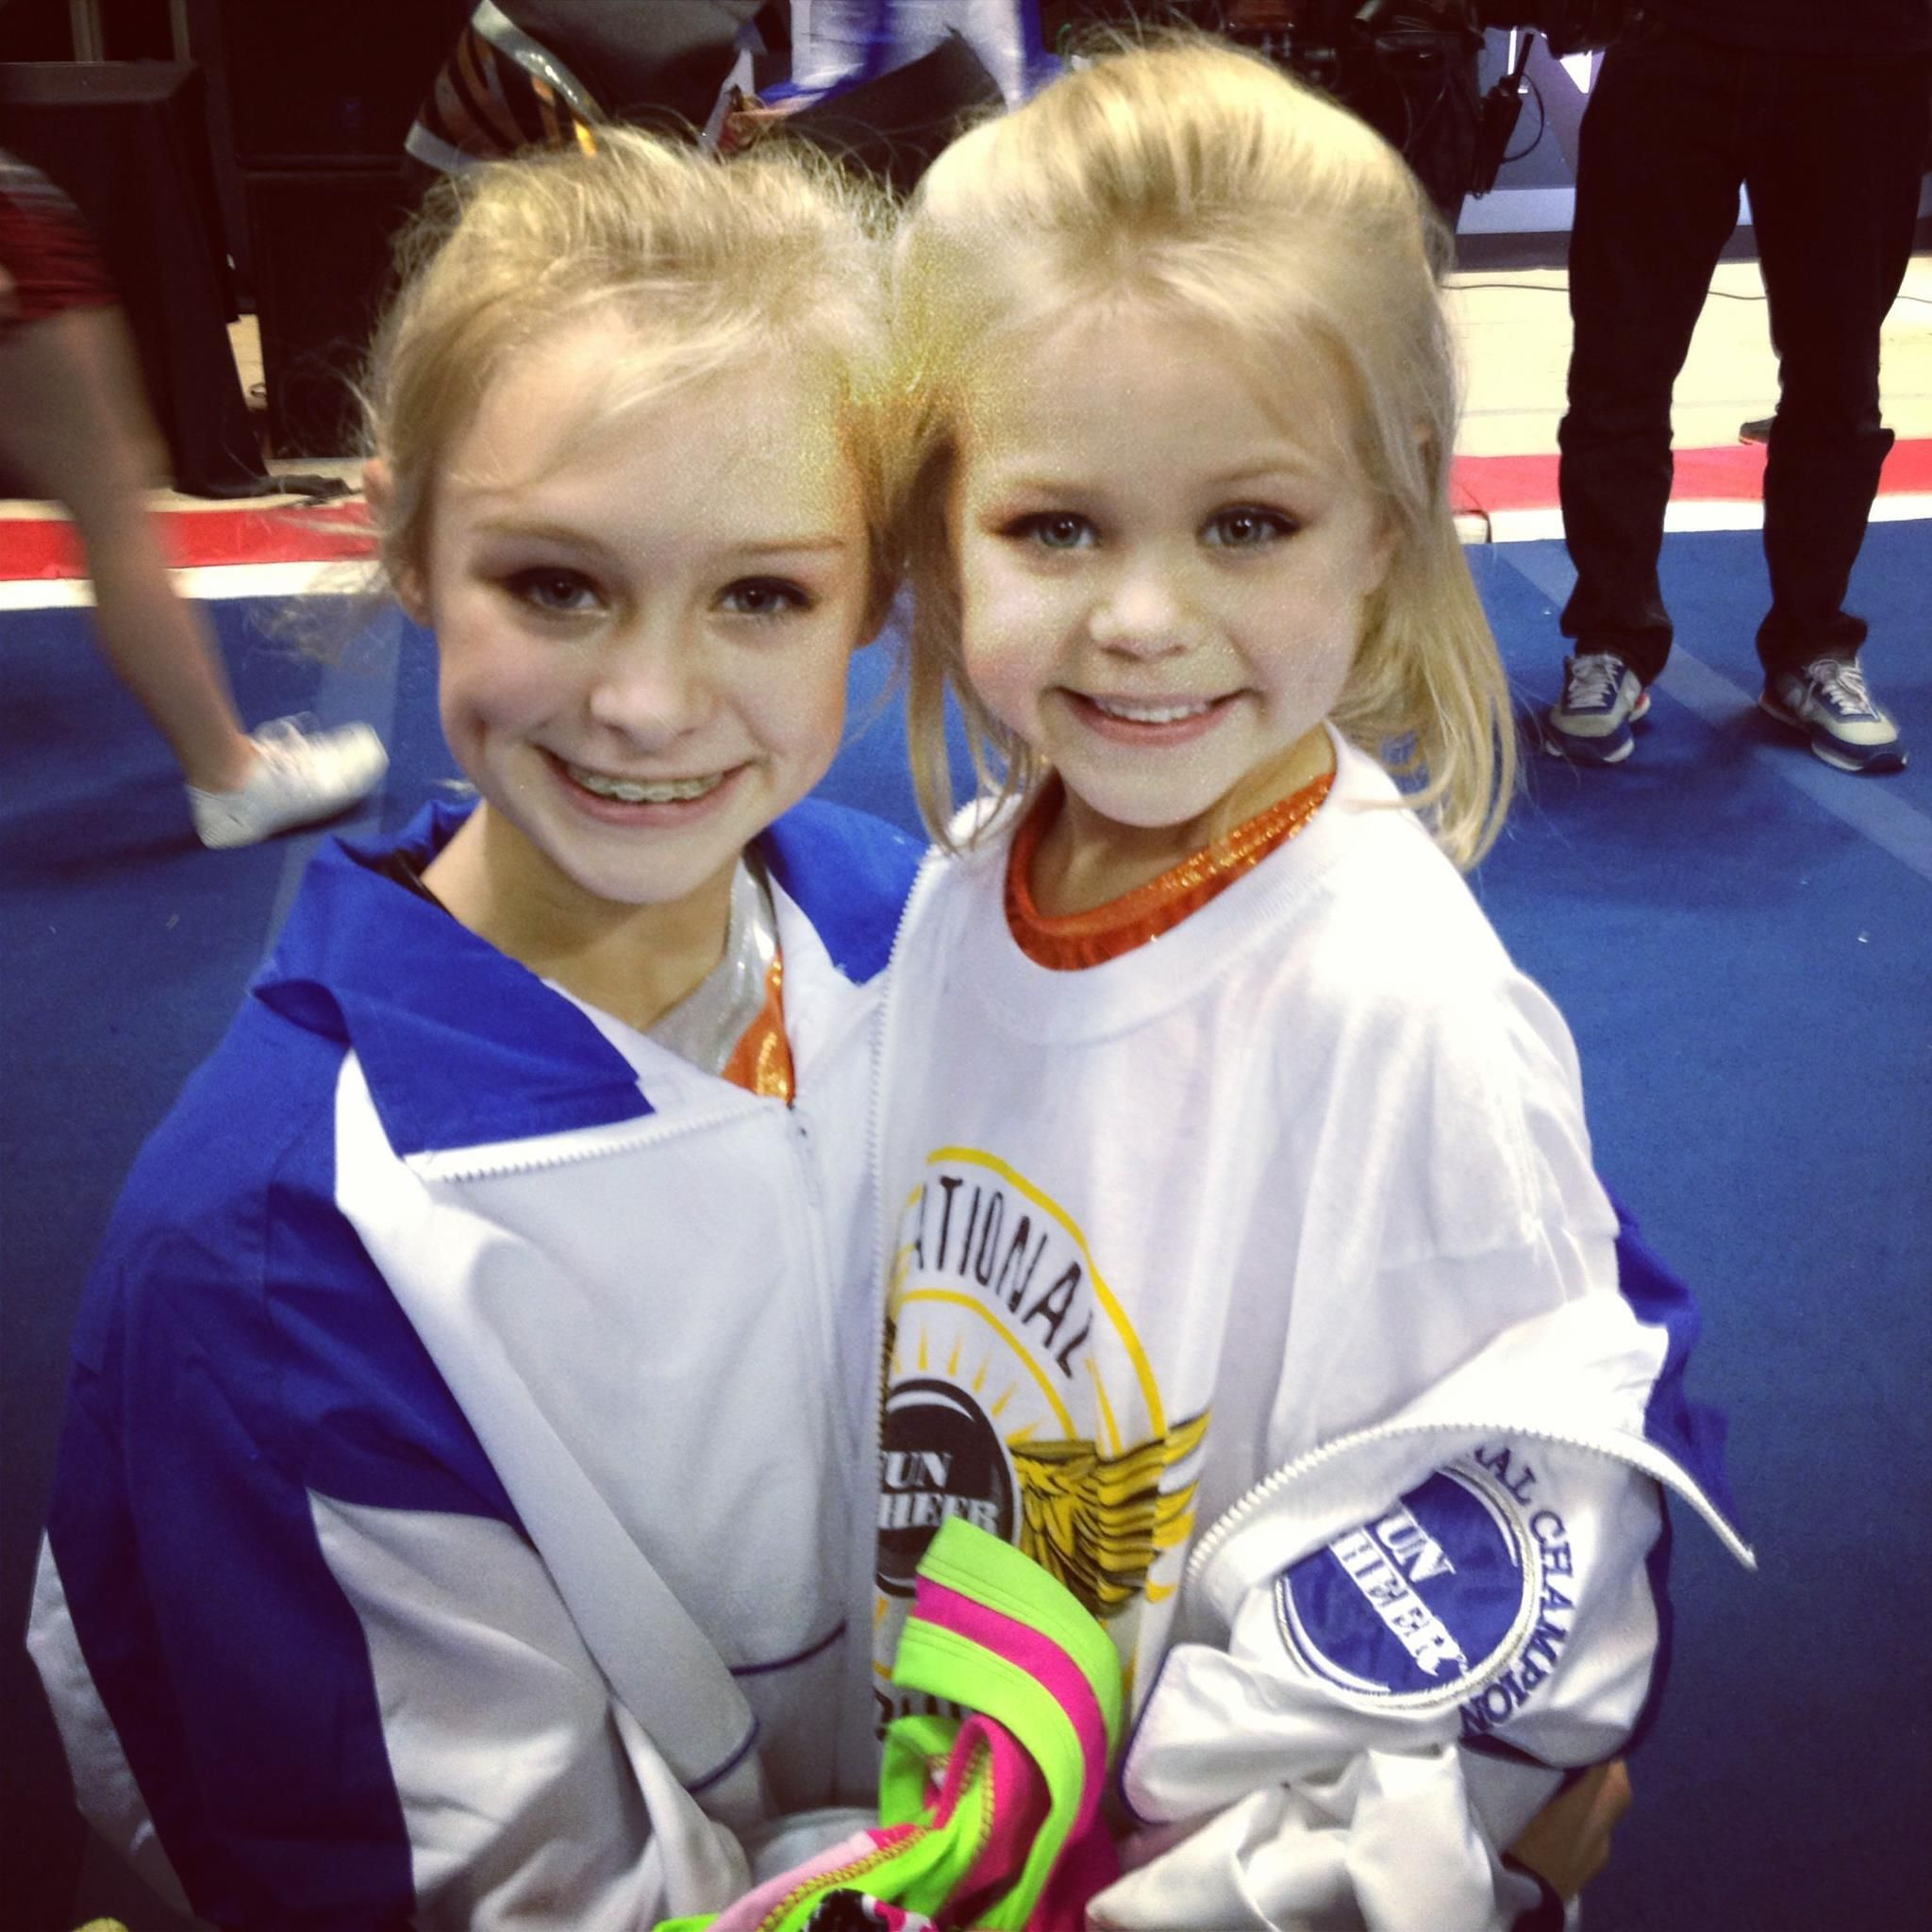 Cambree and Cassidee Texas Cheer Competition. Cheer Perfection   (Cassadee Dunlap's photo not mine)